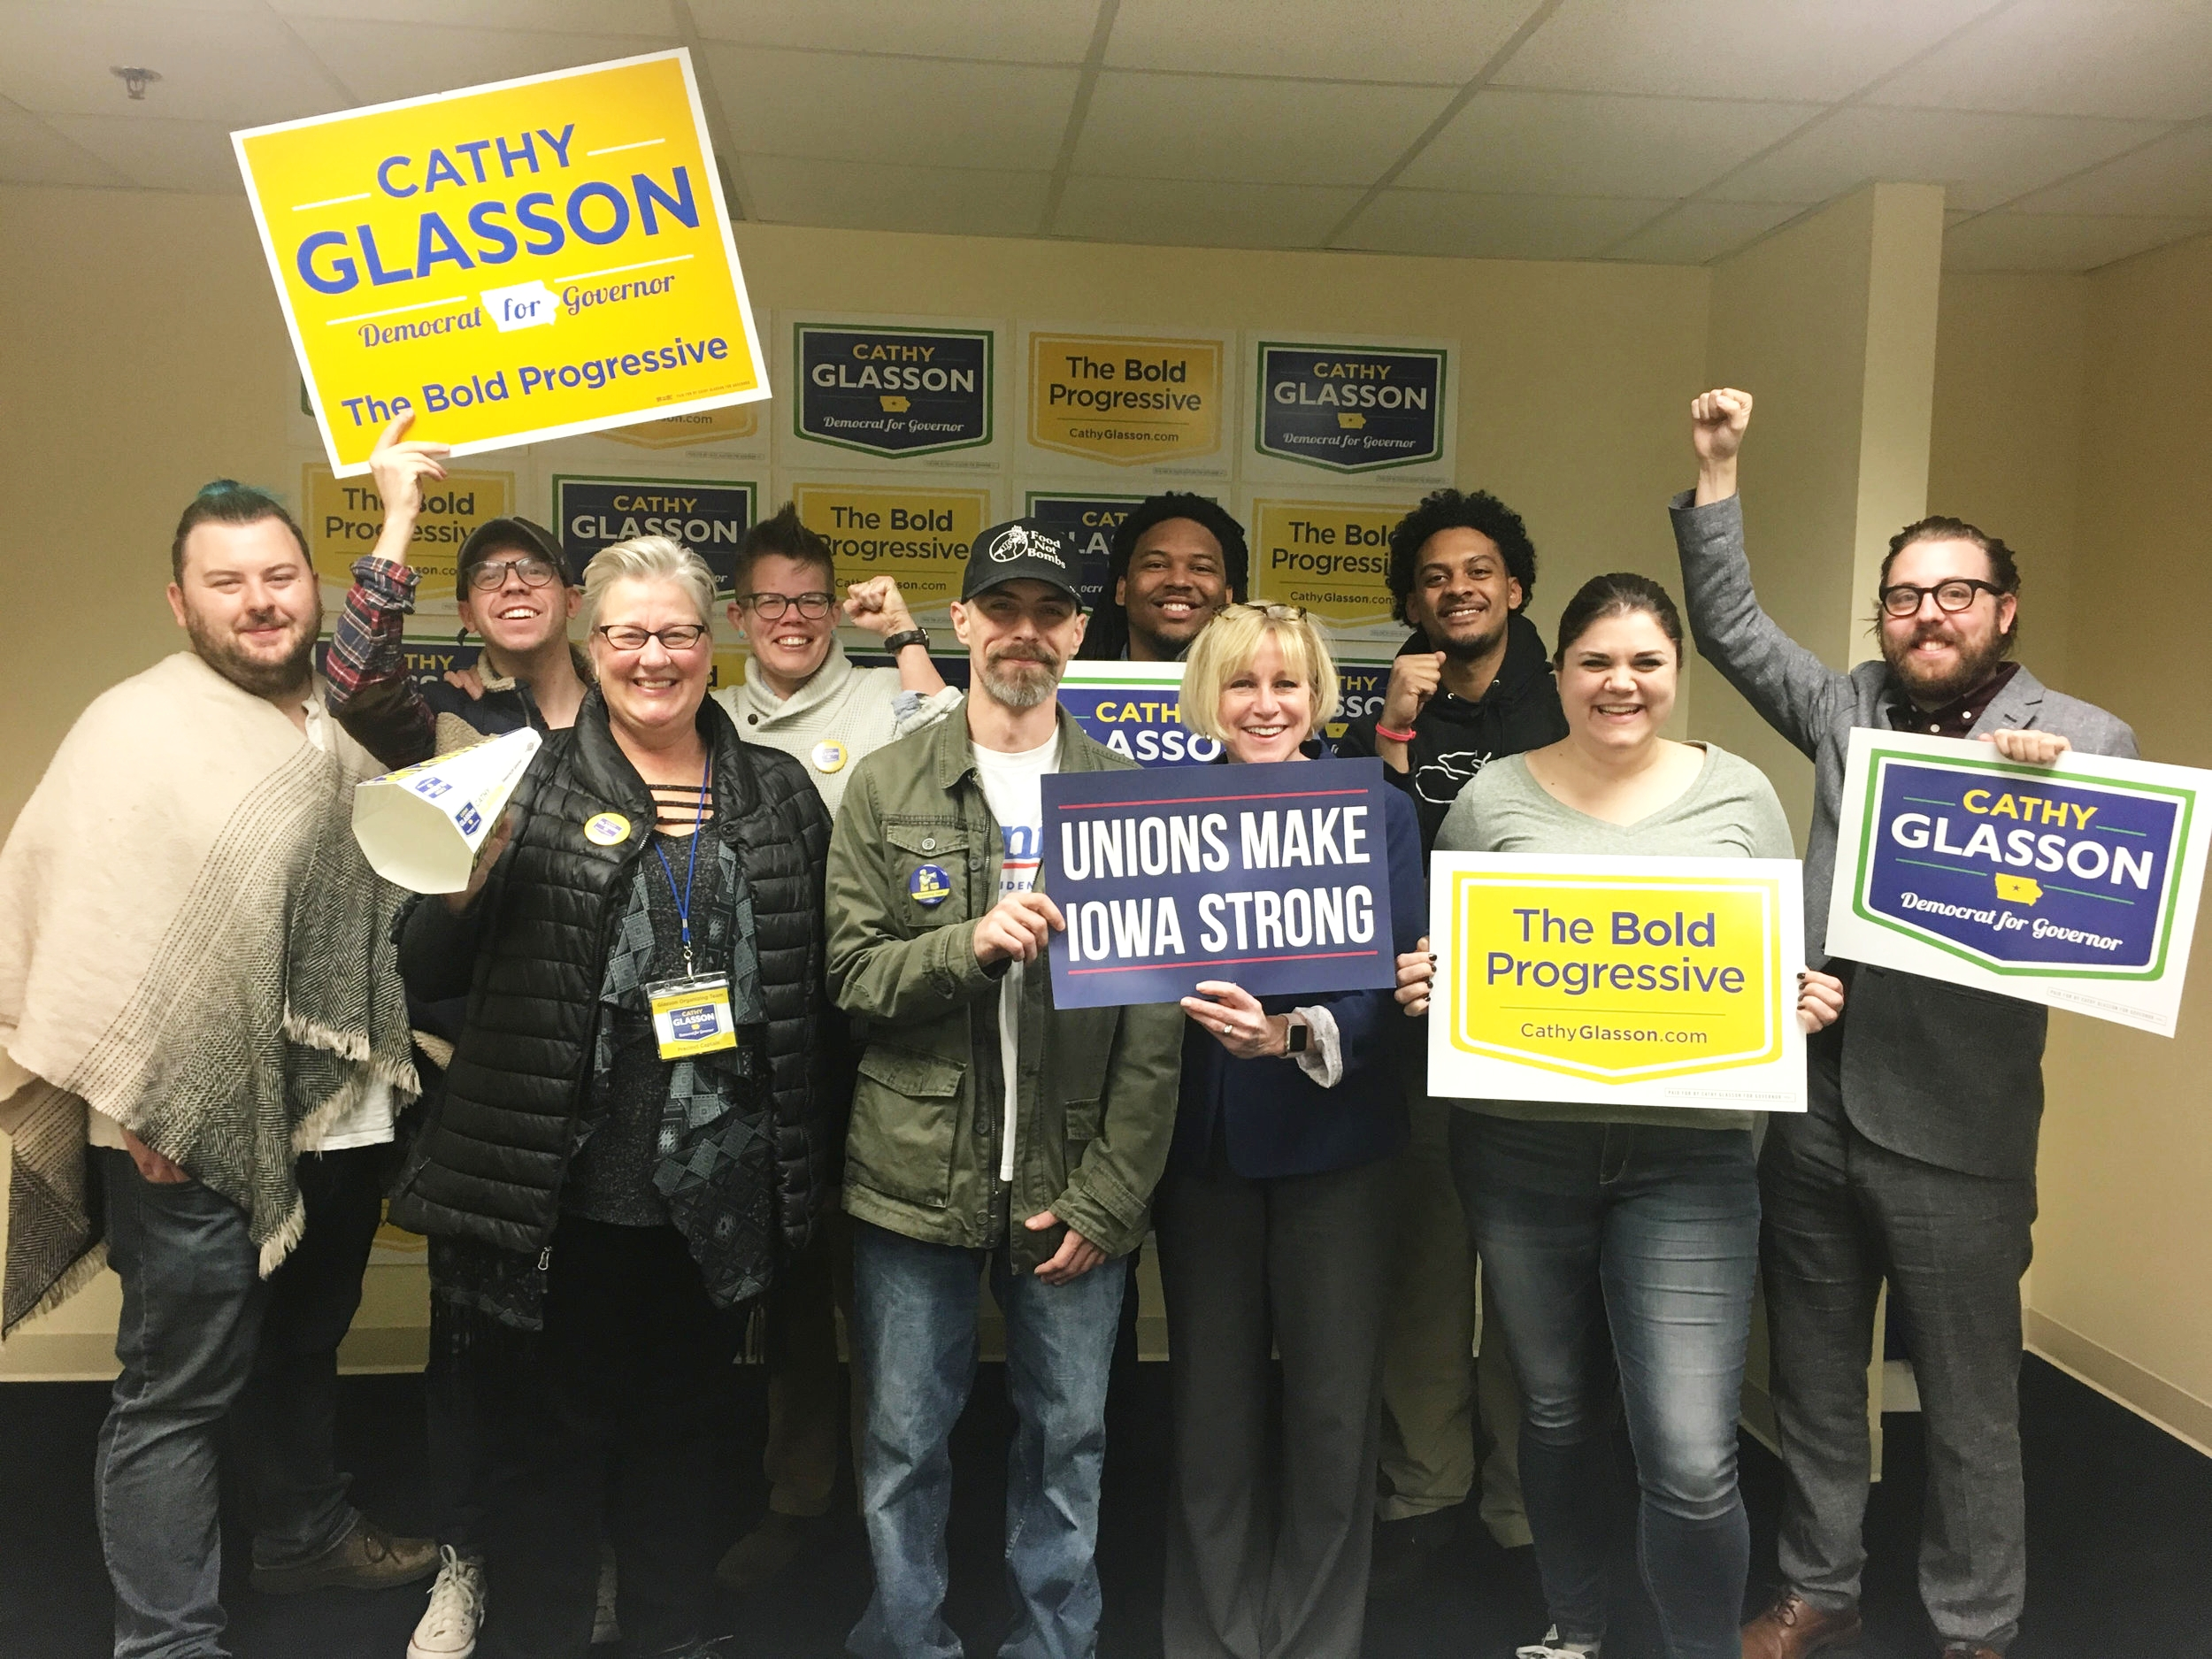 CATHY GLASSON FOR GOVERNOR -